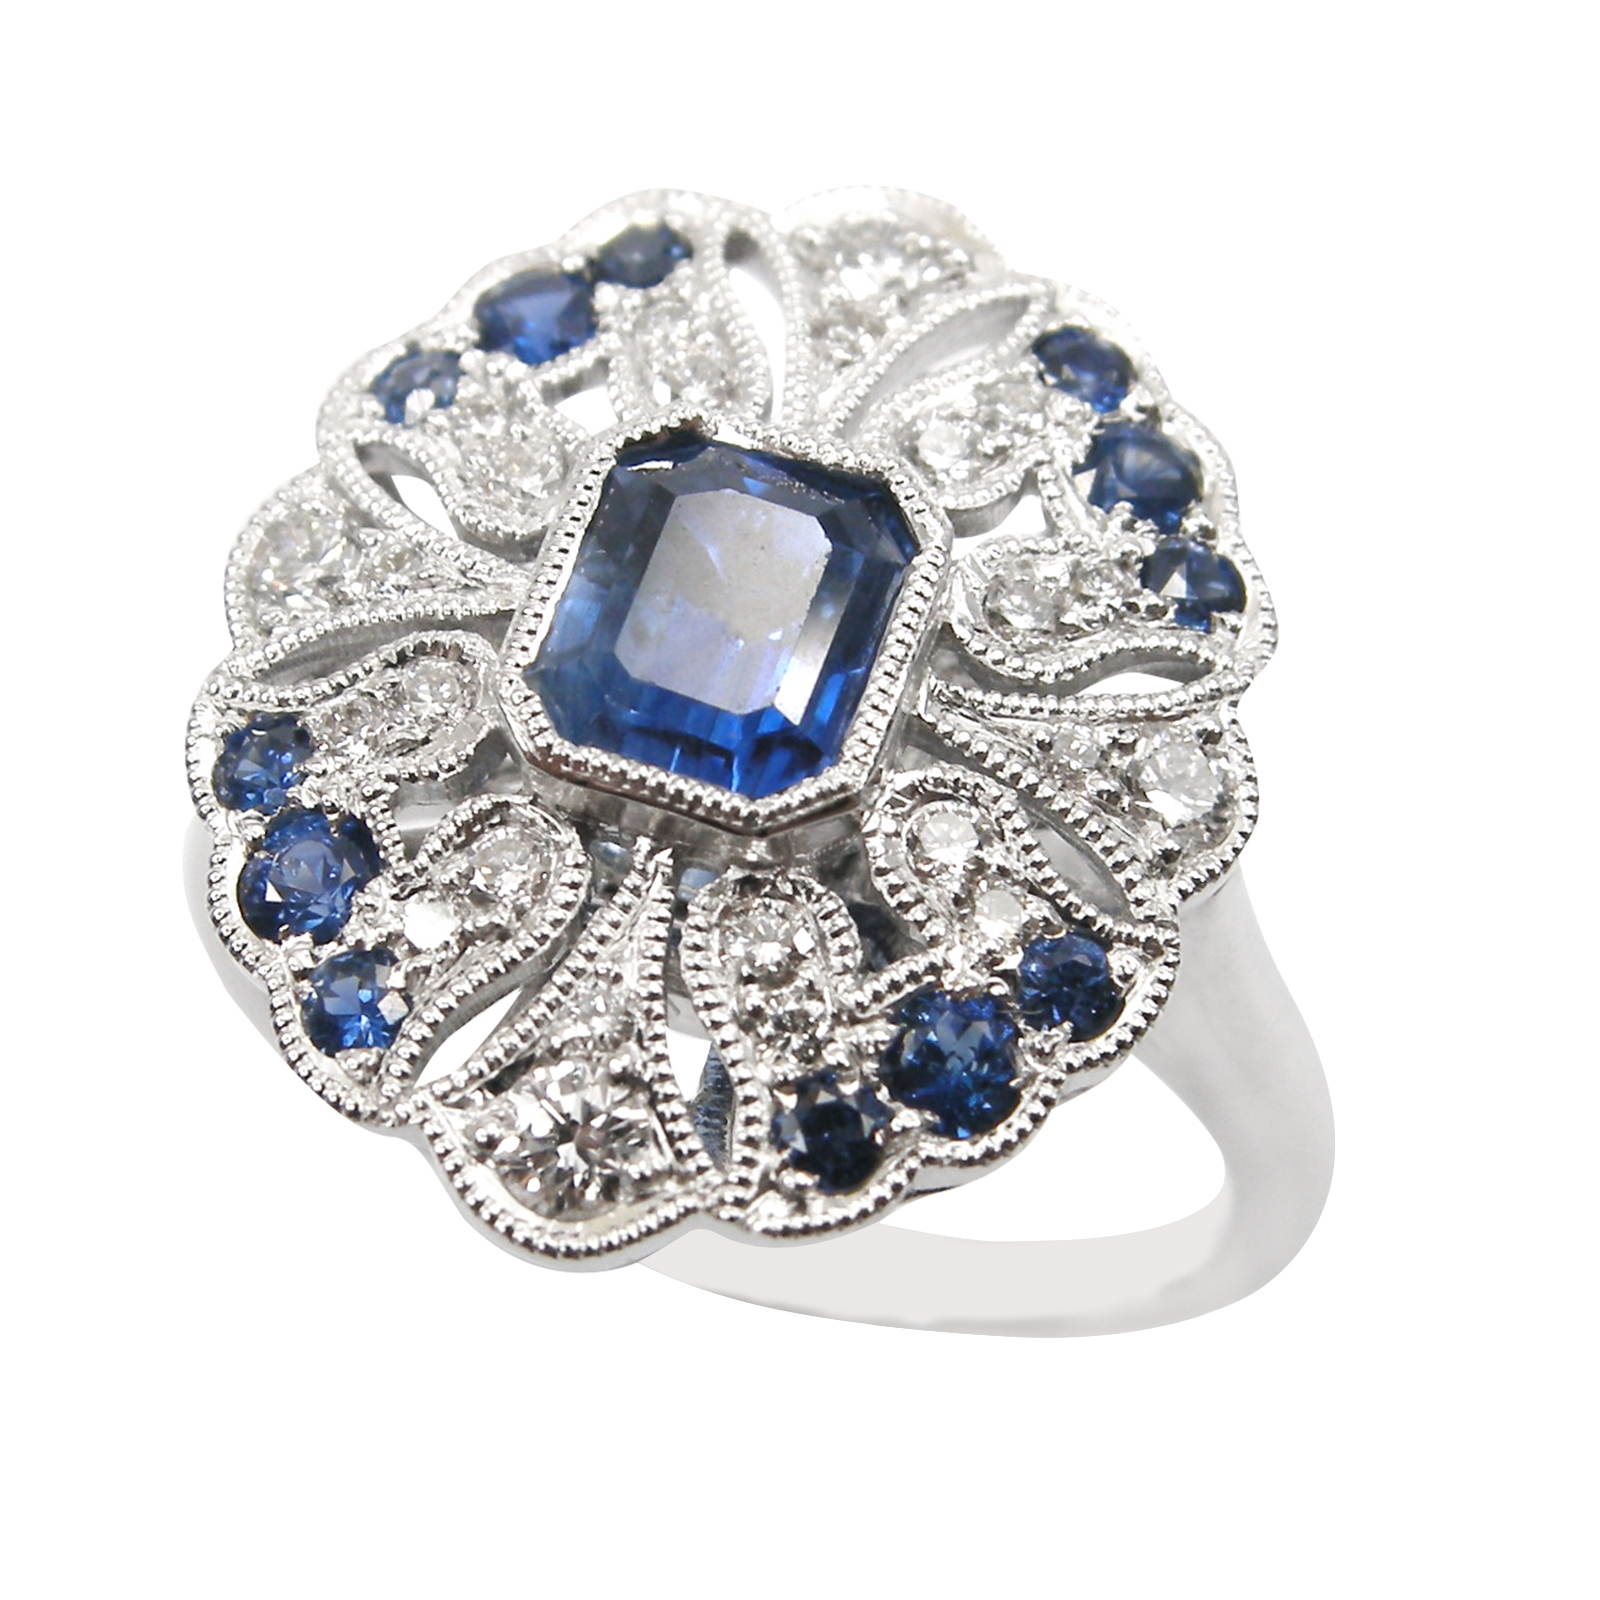 SAPPHIRE & DIAMOND RING ANTIQUE STYLE BESPOKE FINE JEWELLERY BY SHAHINA HATTA HONG KONG